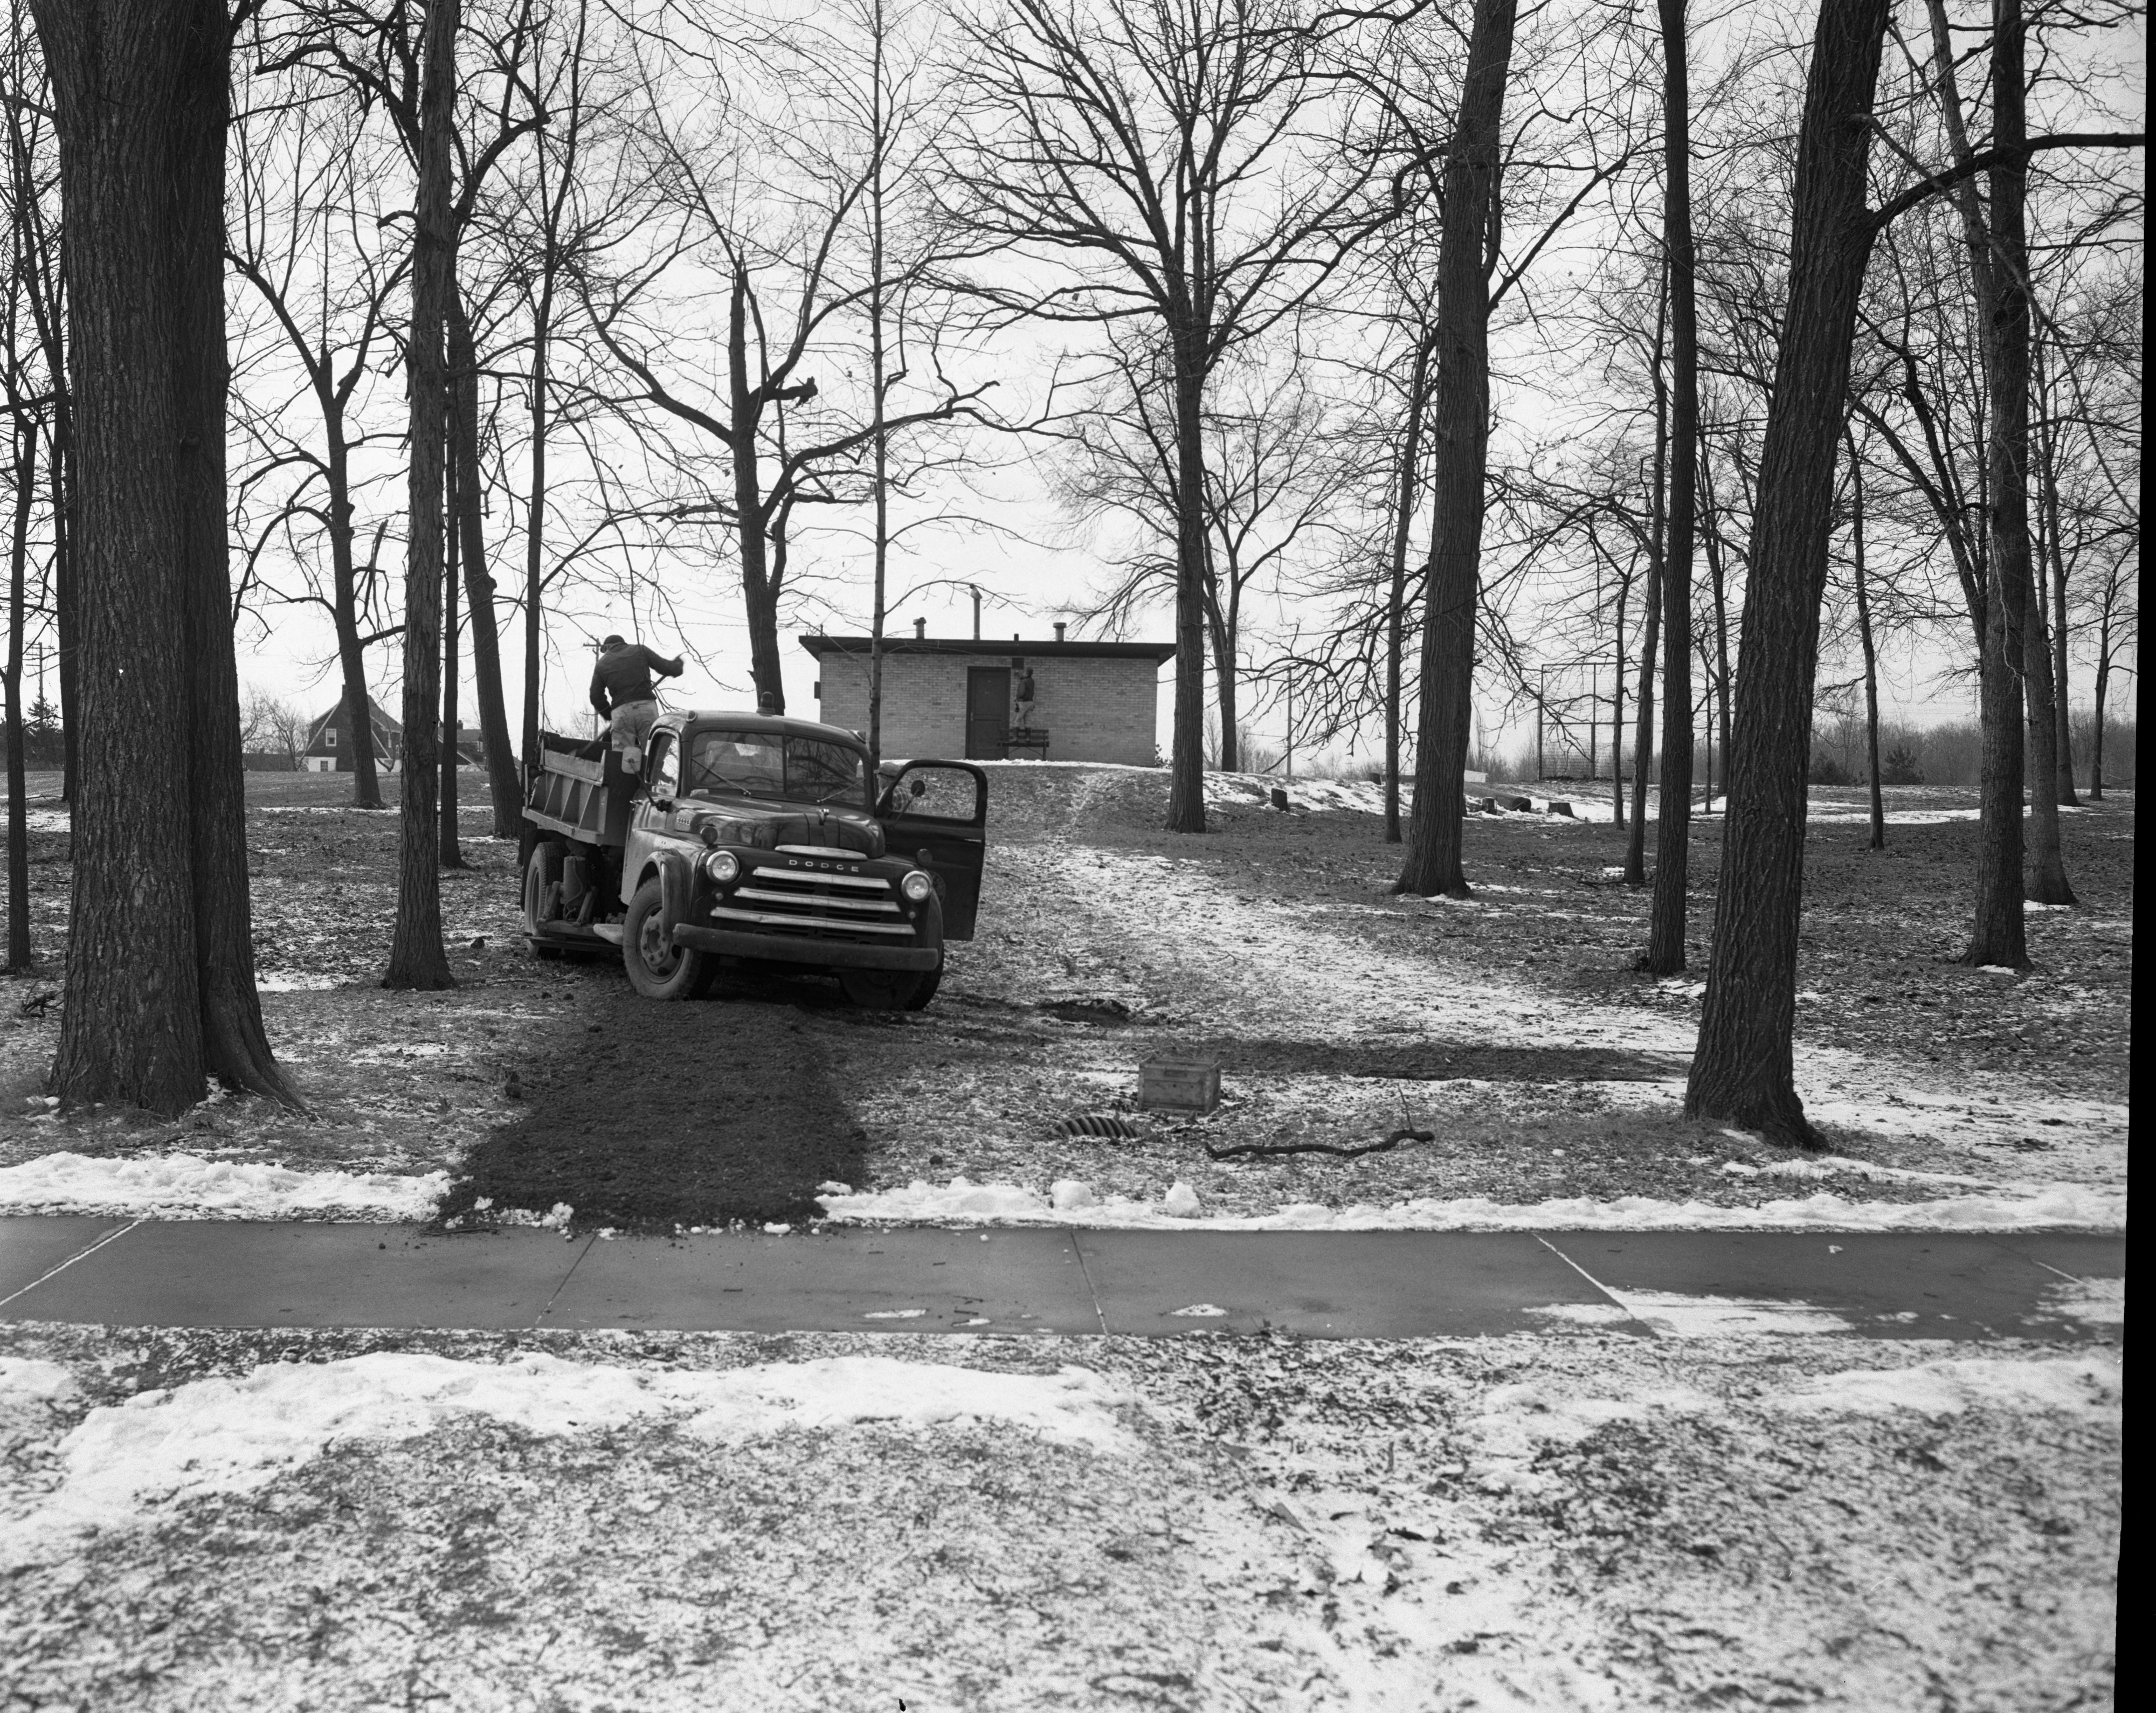 Allmendinger Park shelter getting readied as a polling place, March 1956 image